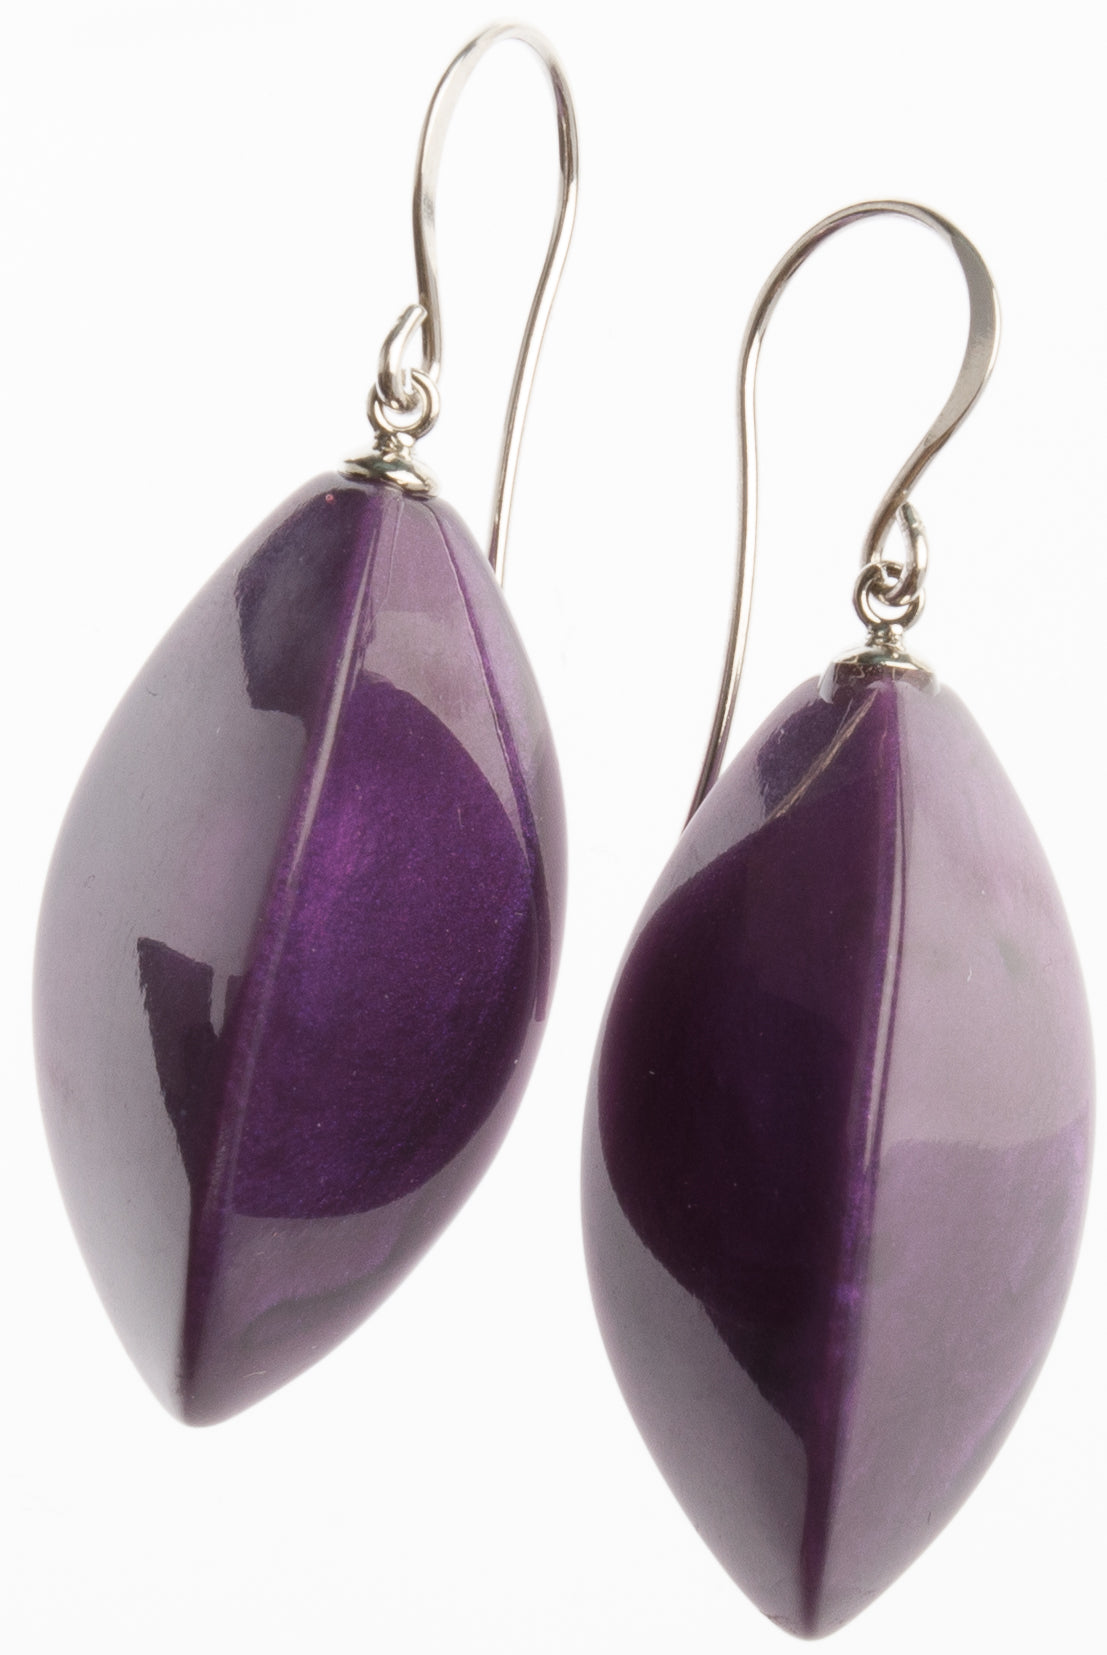 Zsiska Bossa Nova Purple Drop Earrings